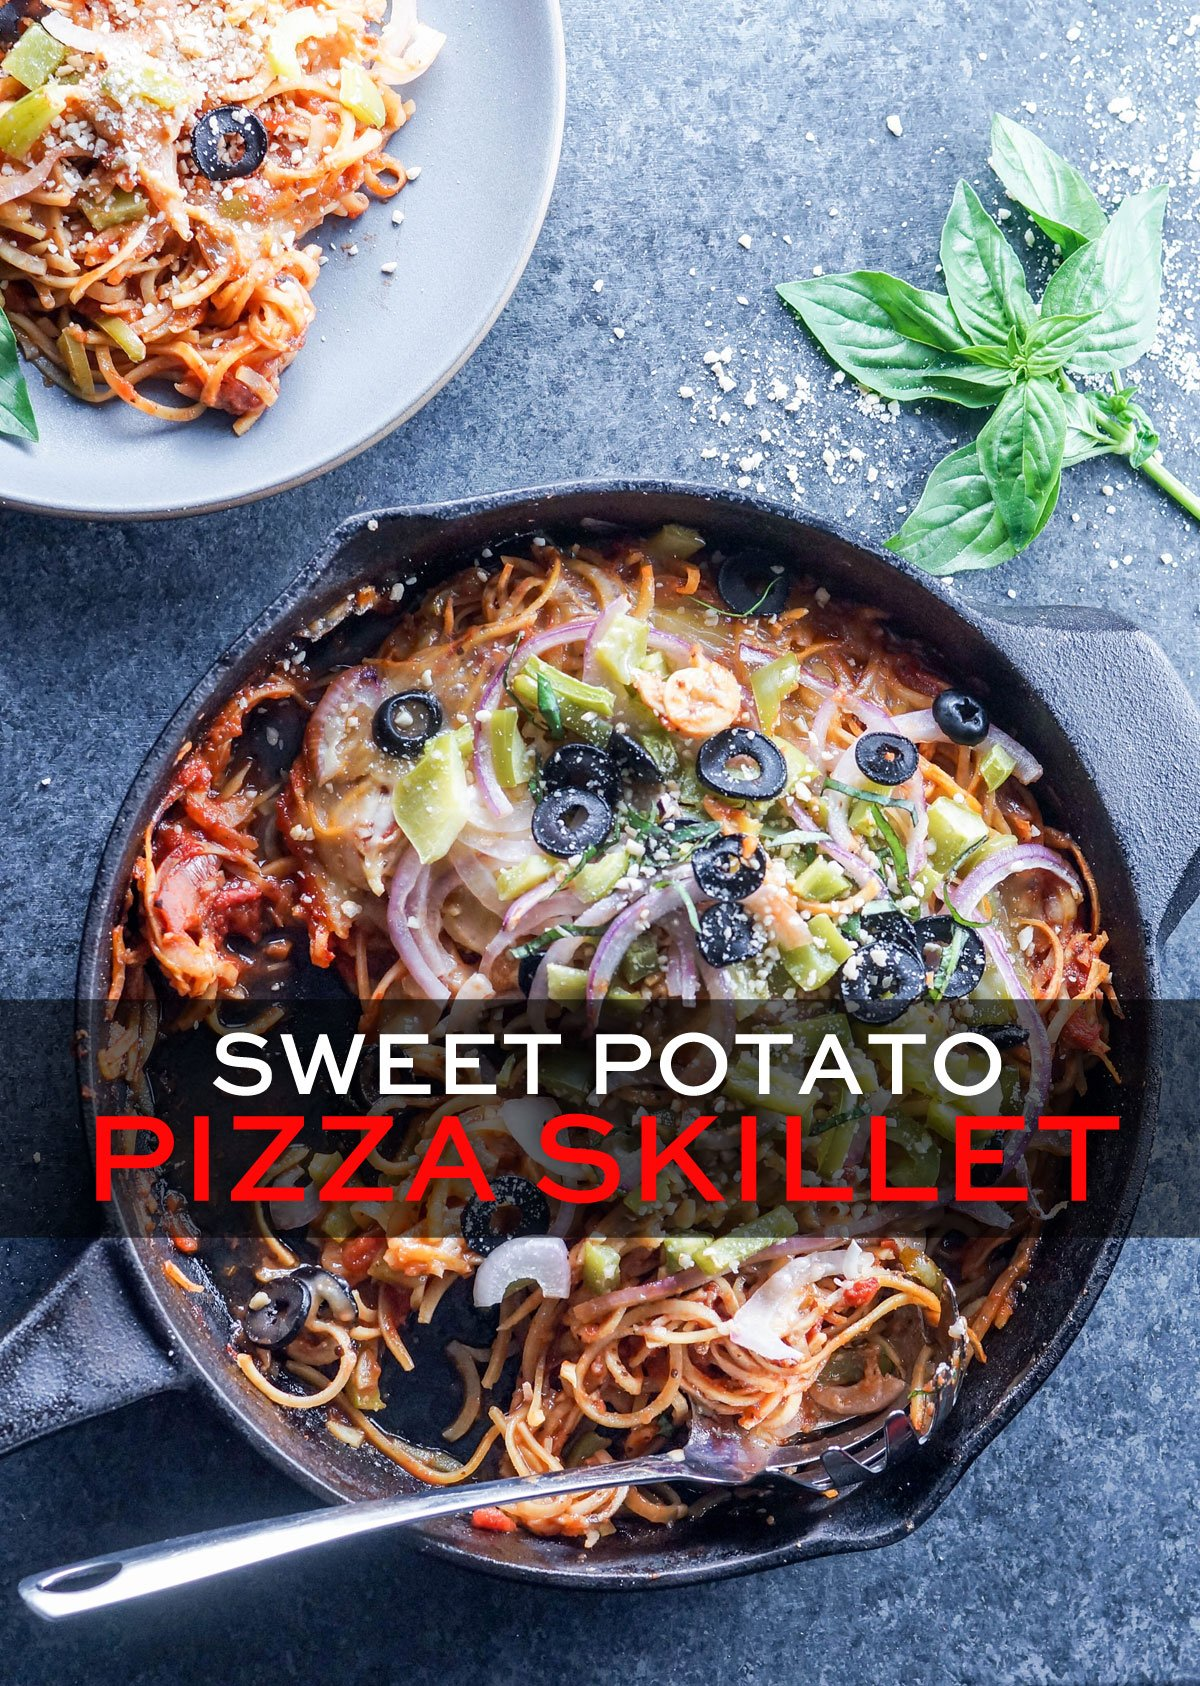 sweet potato pizza skillet dish